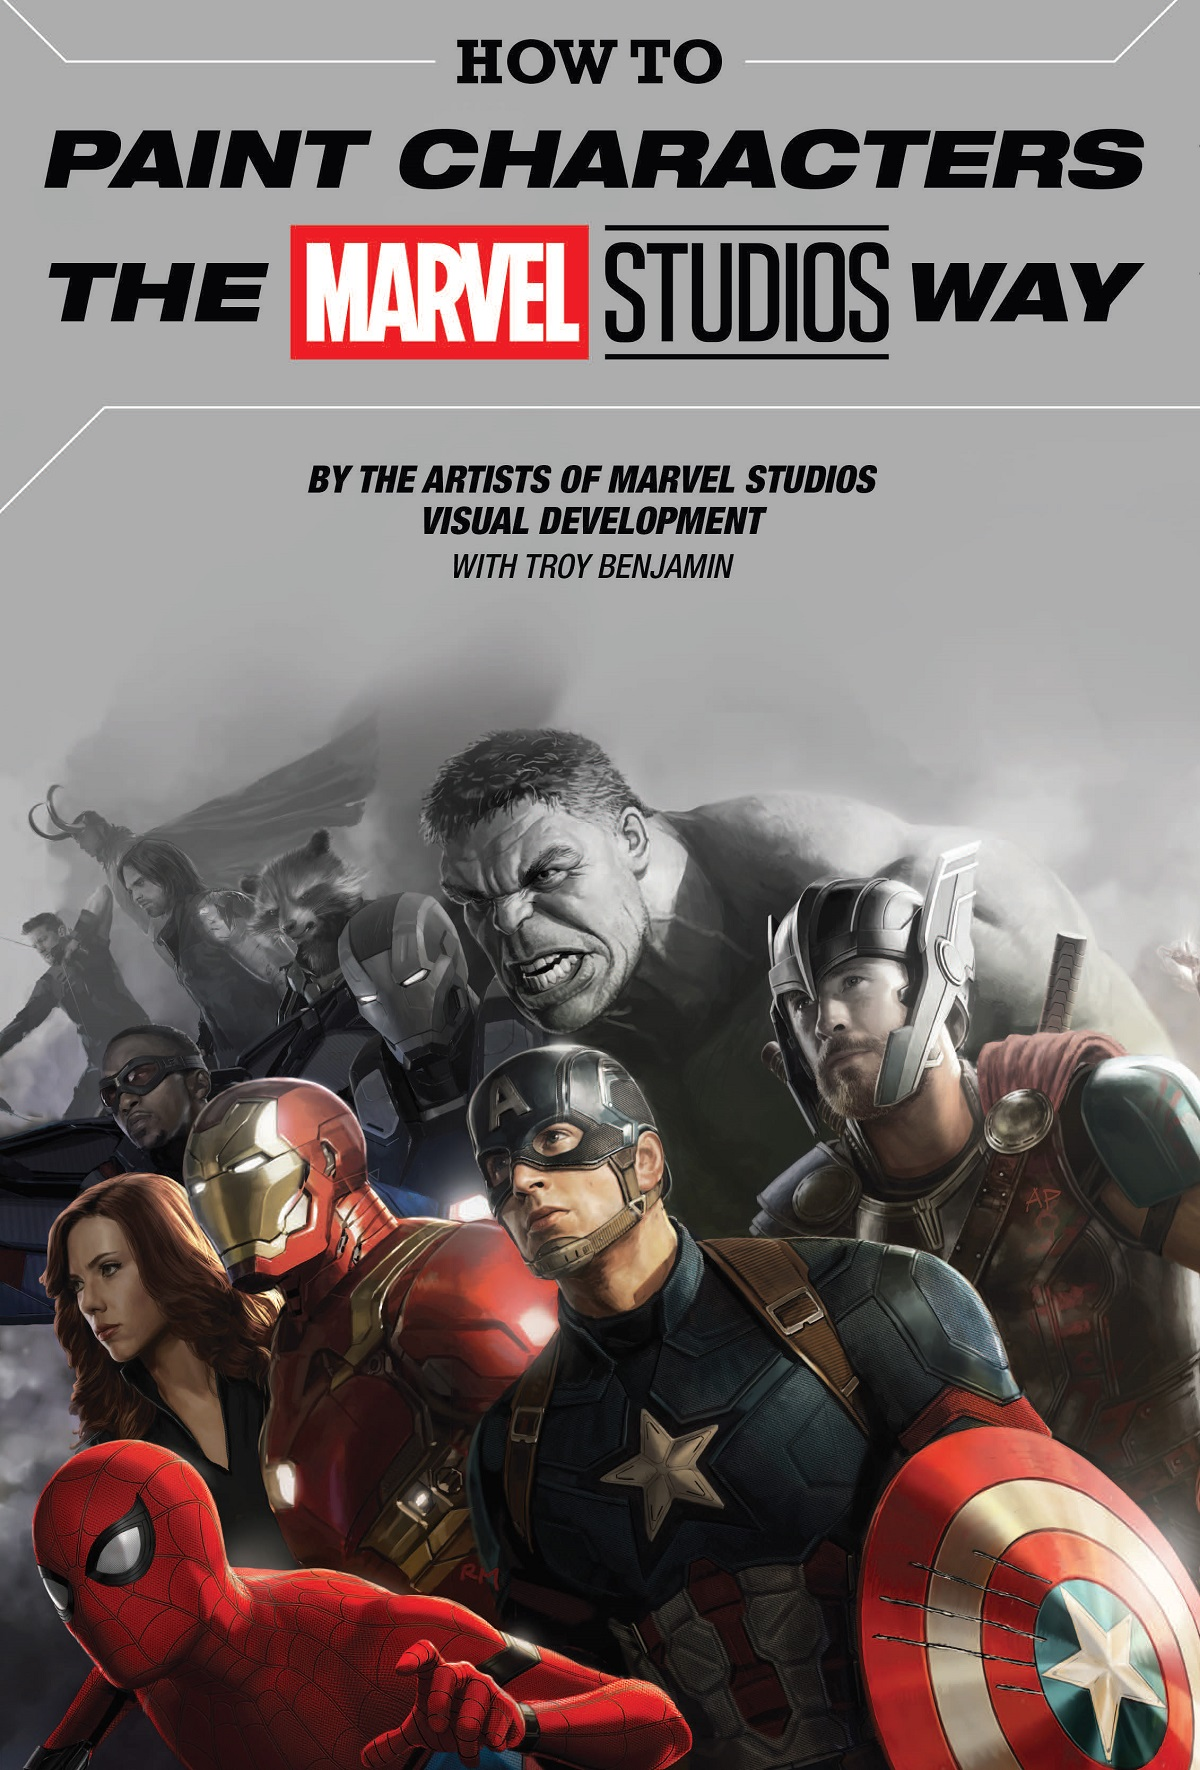 How To Paint Characters The Marvel Studios Way (Hardcover)